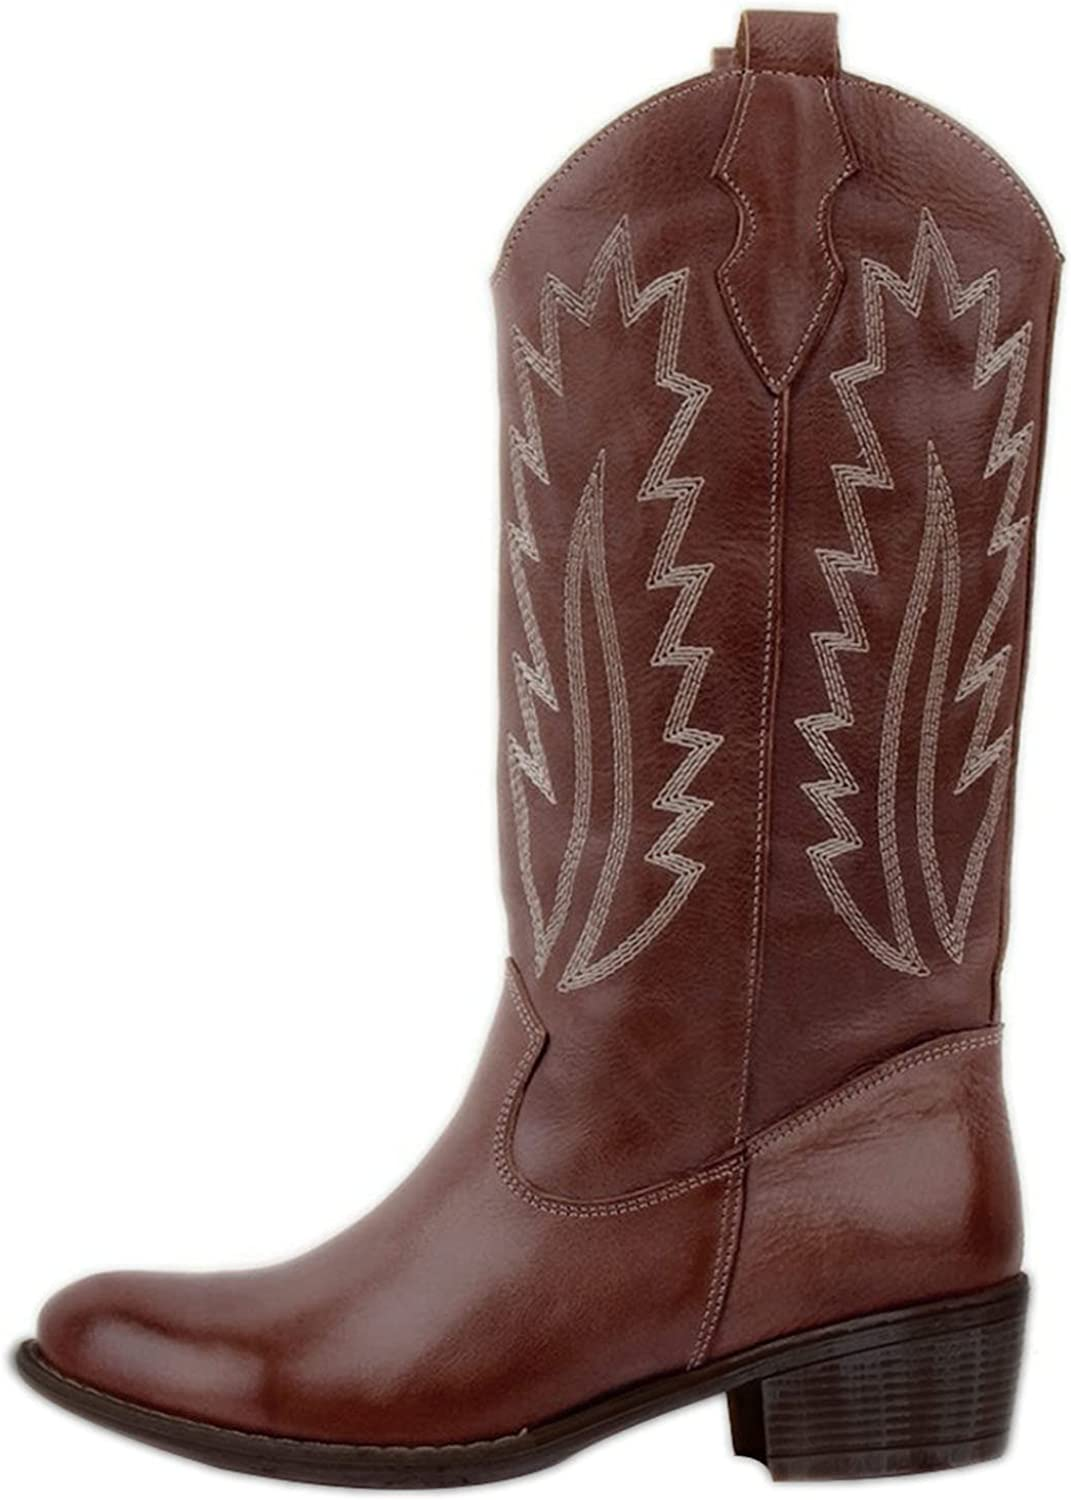 ZiSUGP Cowboy Boots For Women Pointed Toe Chunky Low Heel Wester